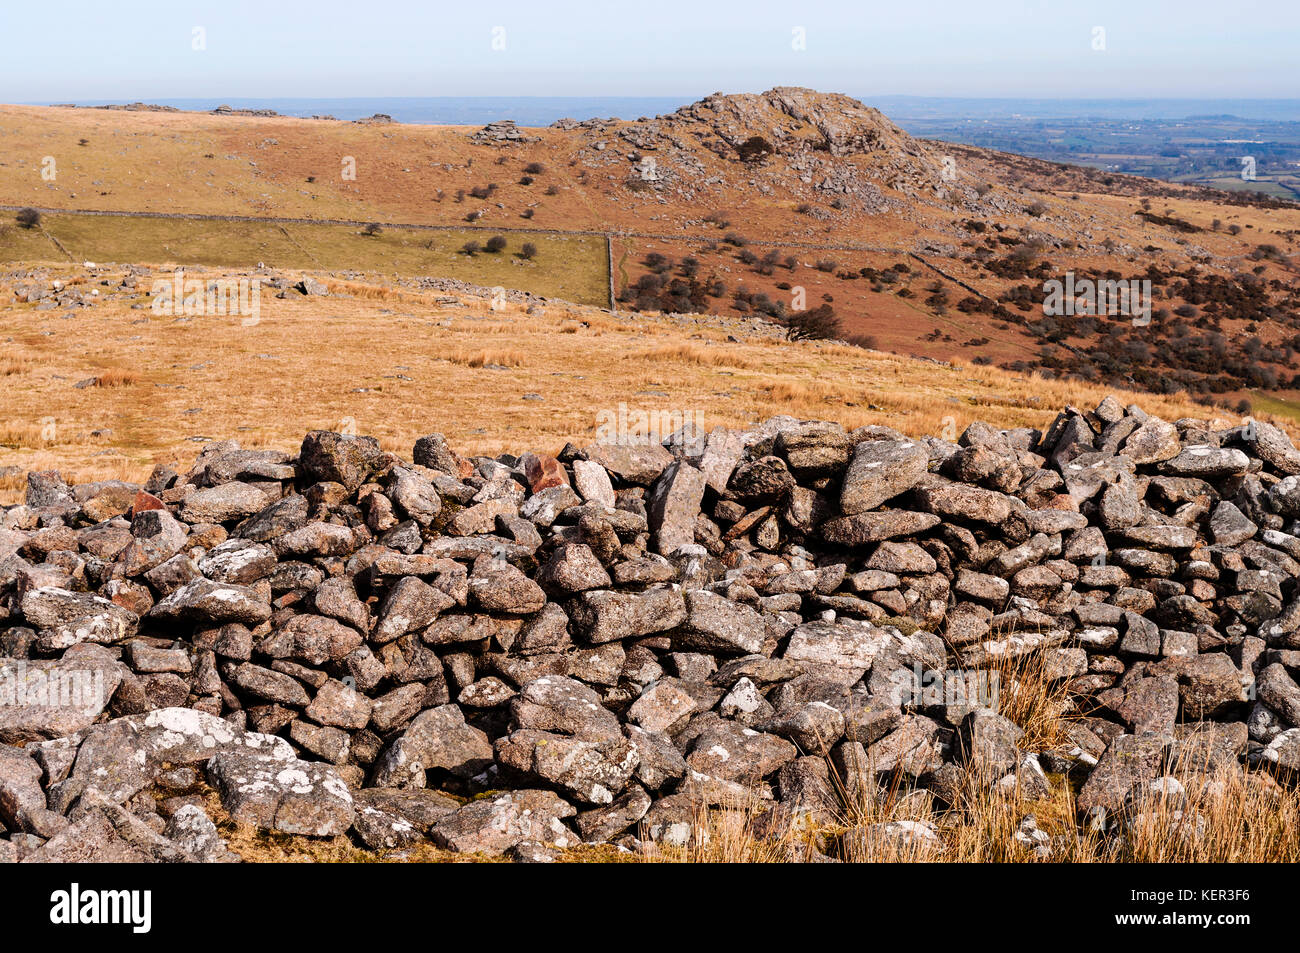 the bronze age stone wall of stowes pound on bodmin moor near the village of minnions in cornwall, england, uk. - Stock Image